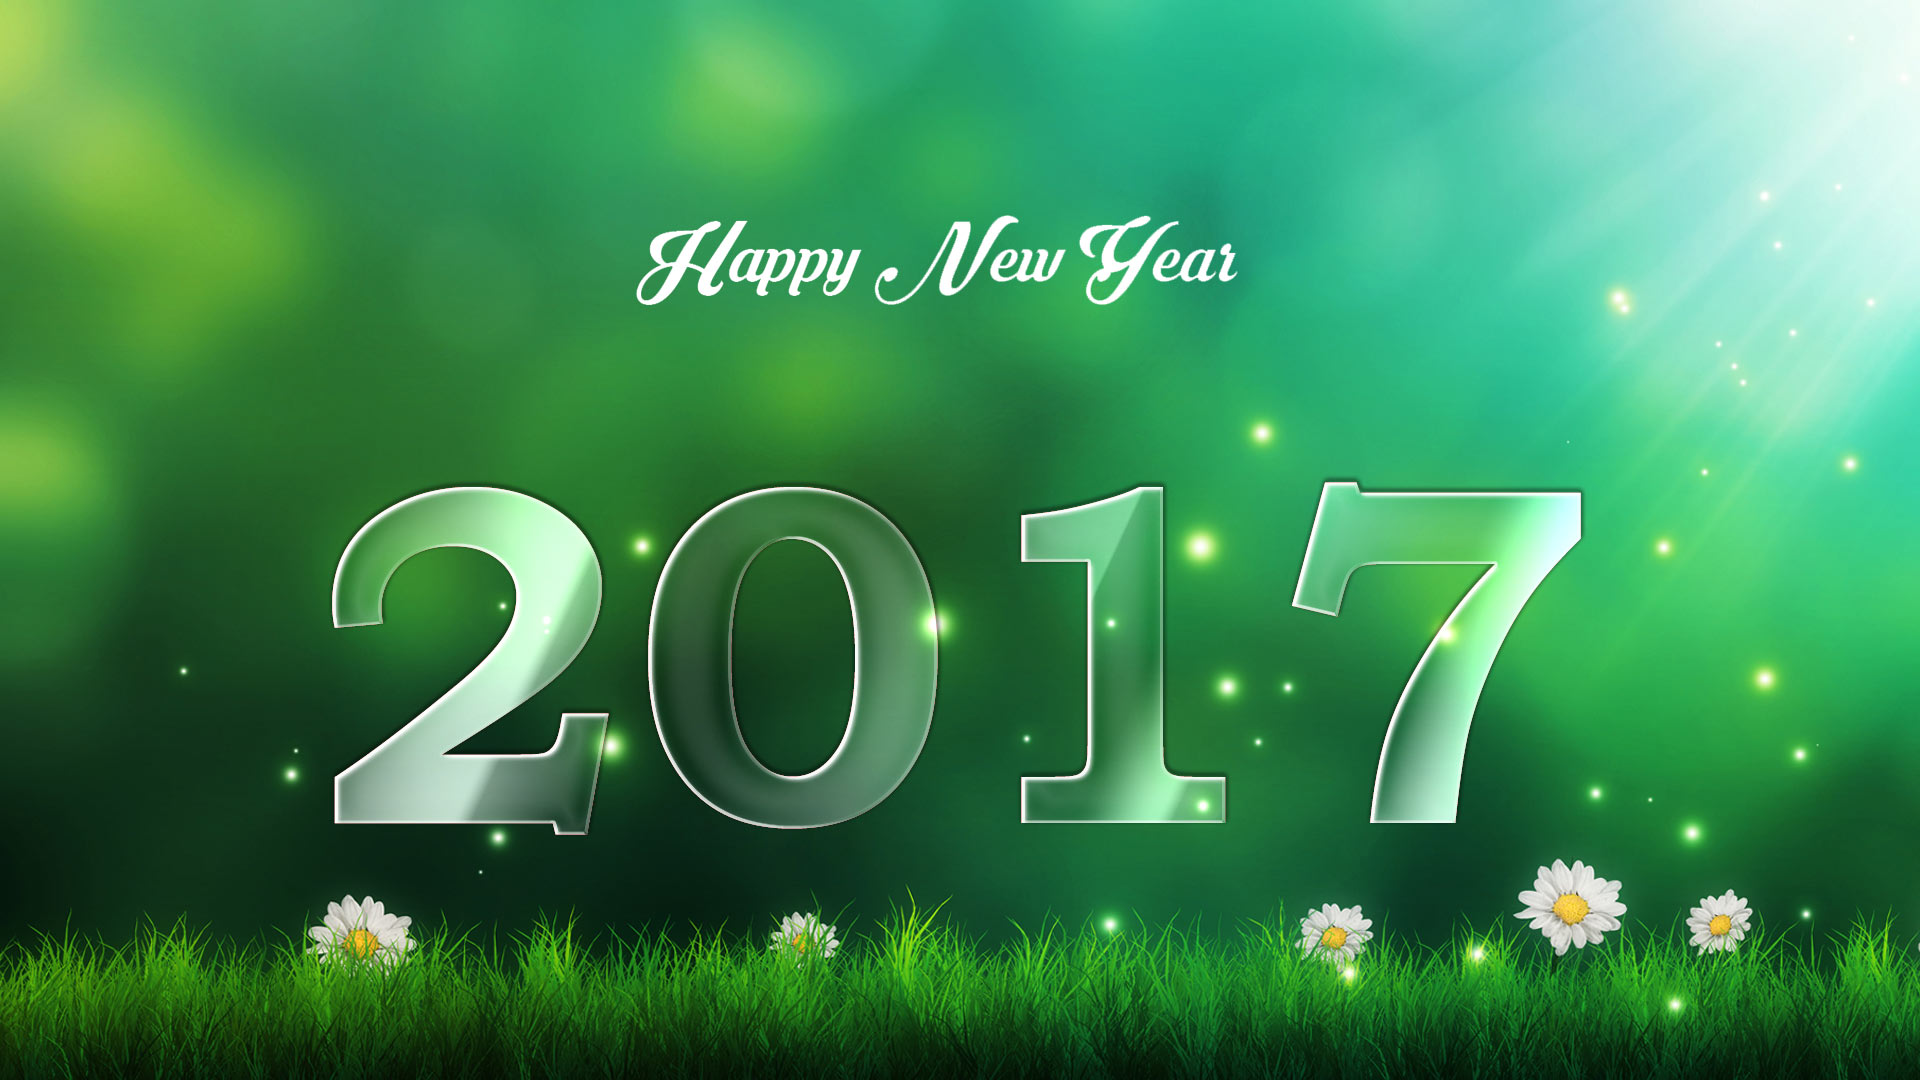 amazoncom happy new year 2017 wallpaper appstore for android